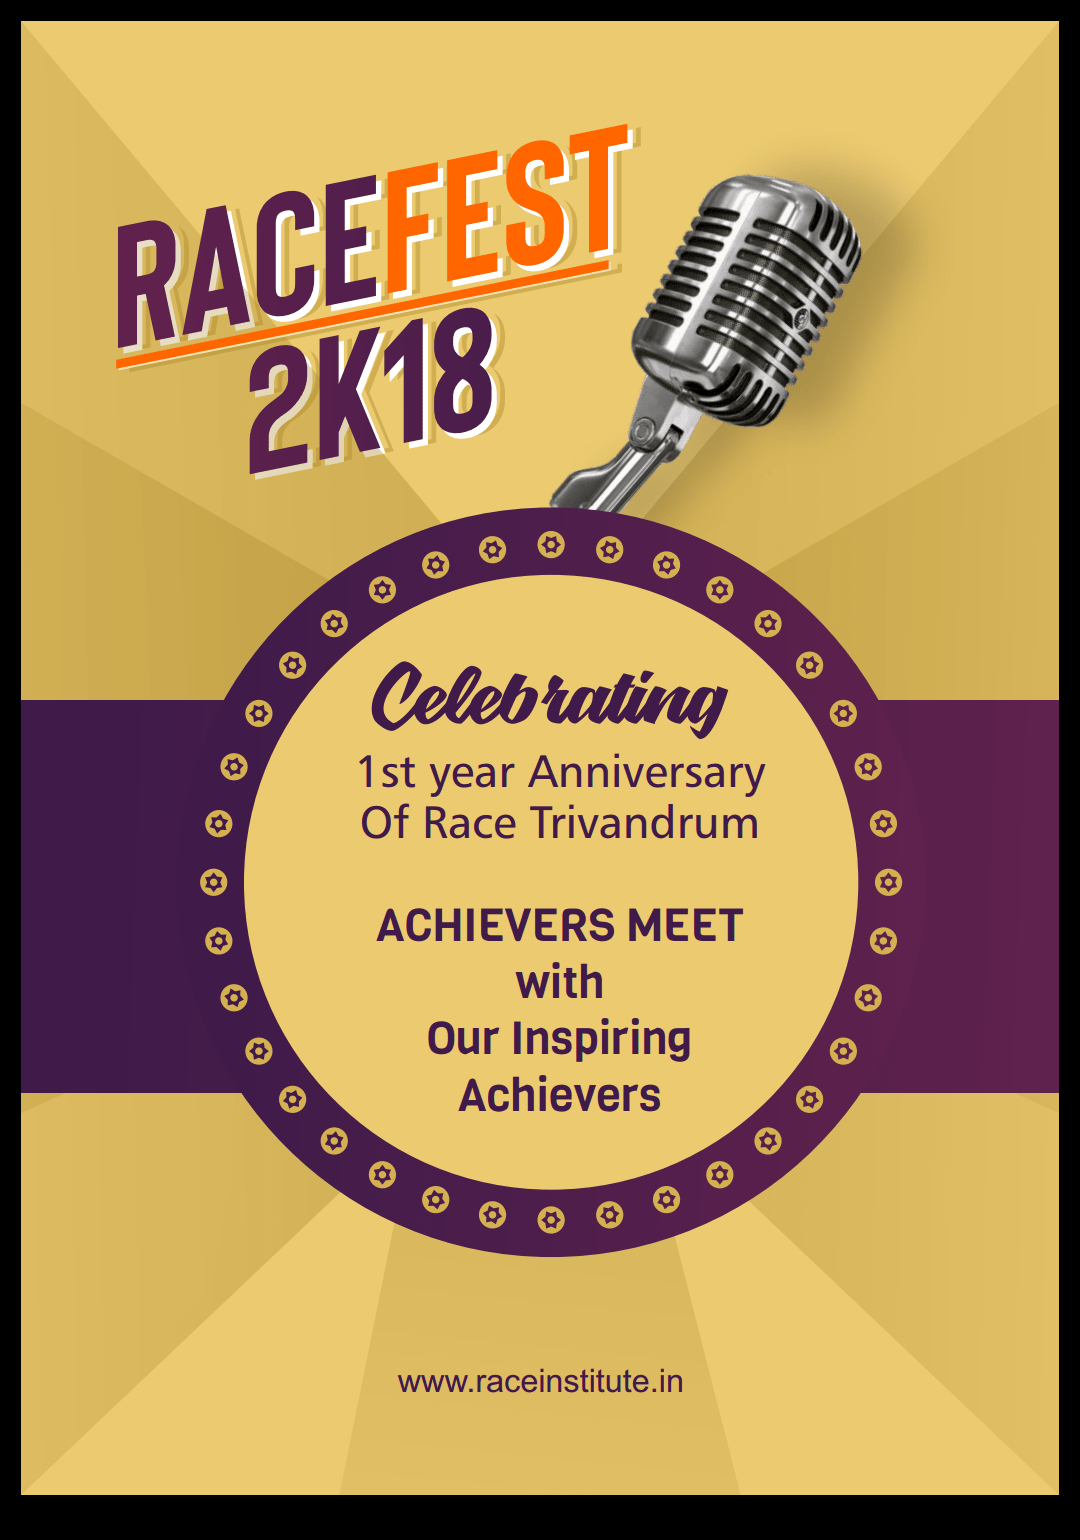 RACEFEST 2K18 - RACE TRIVANDRUM BRANCH (1)